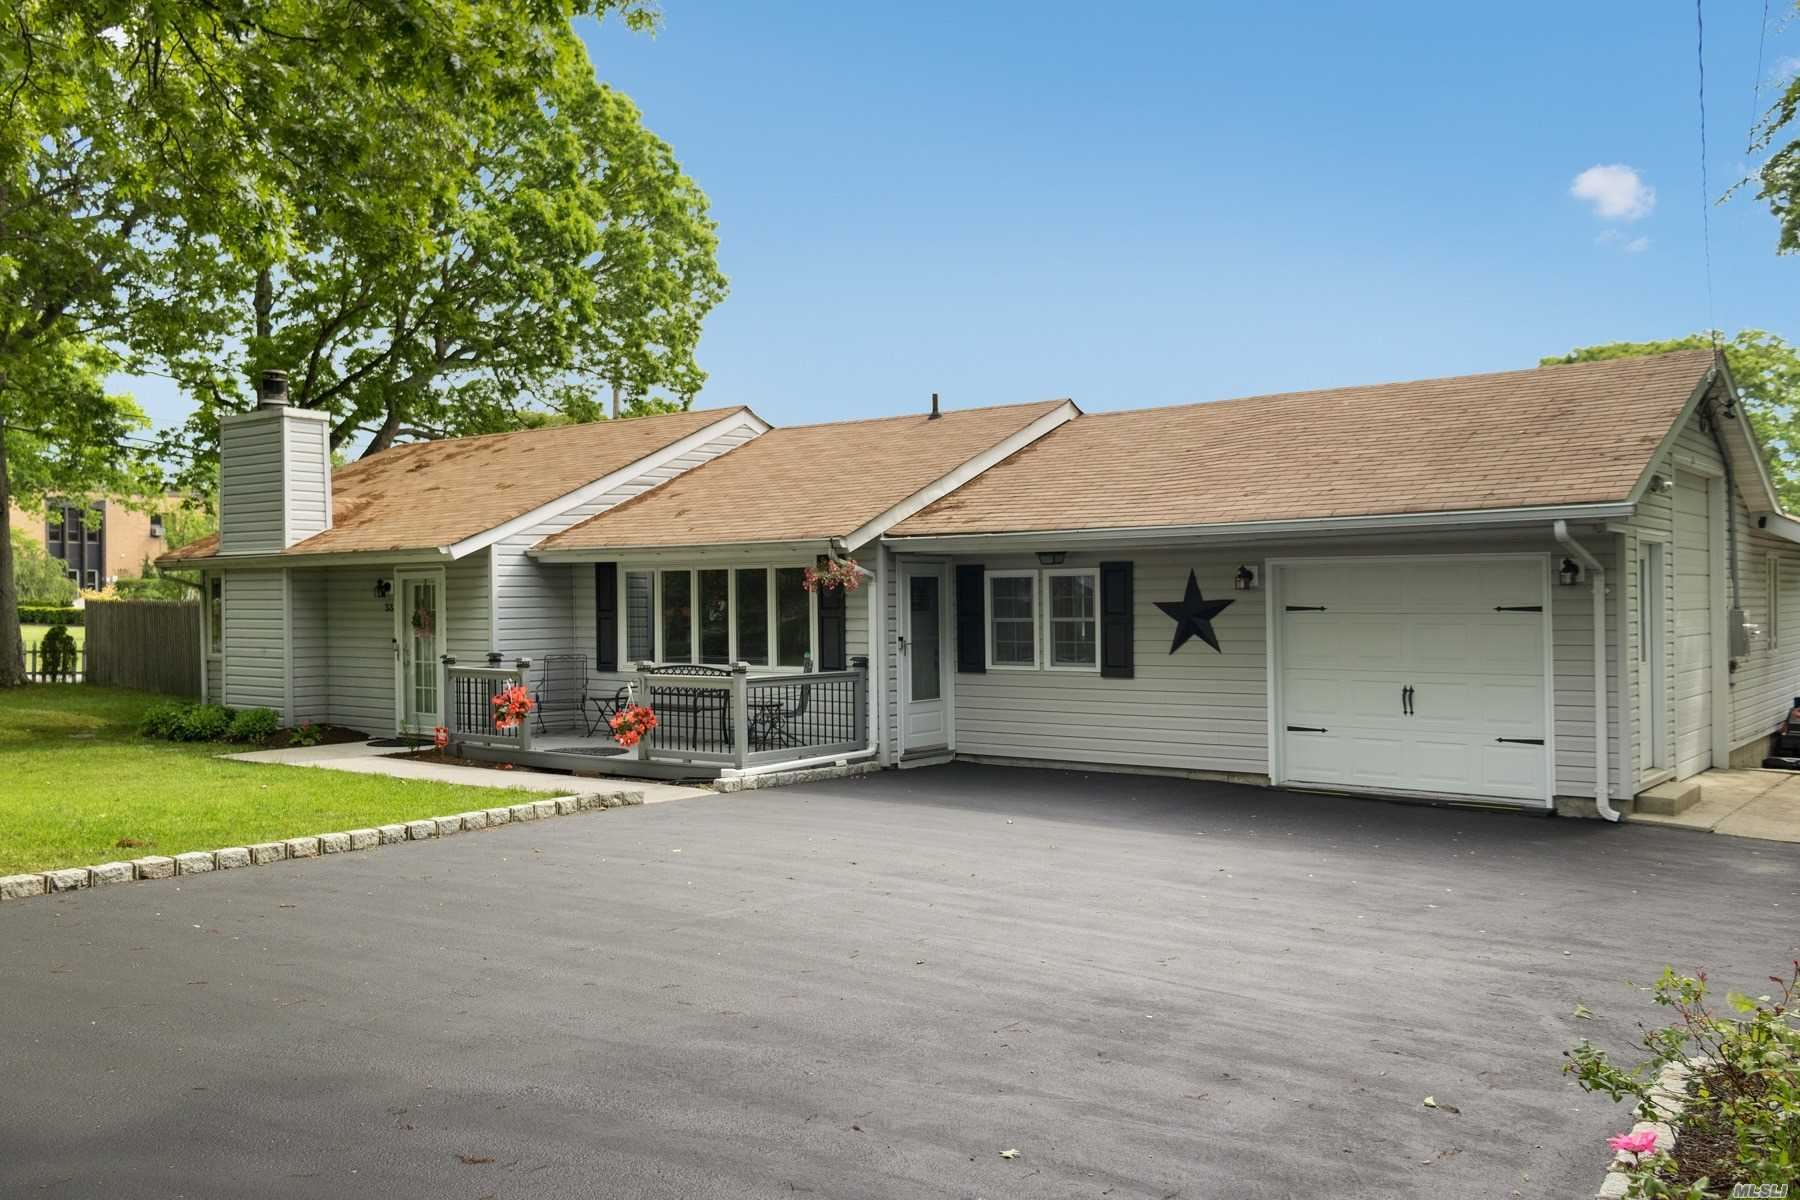 33 Park Pl, Patchogue, NY 11772 - MLS#: 3219751